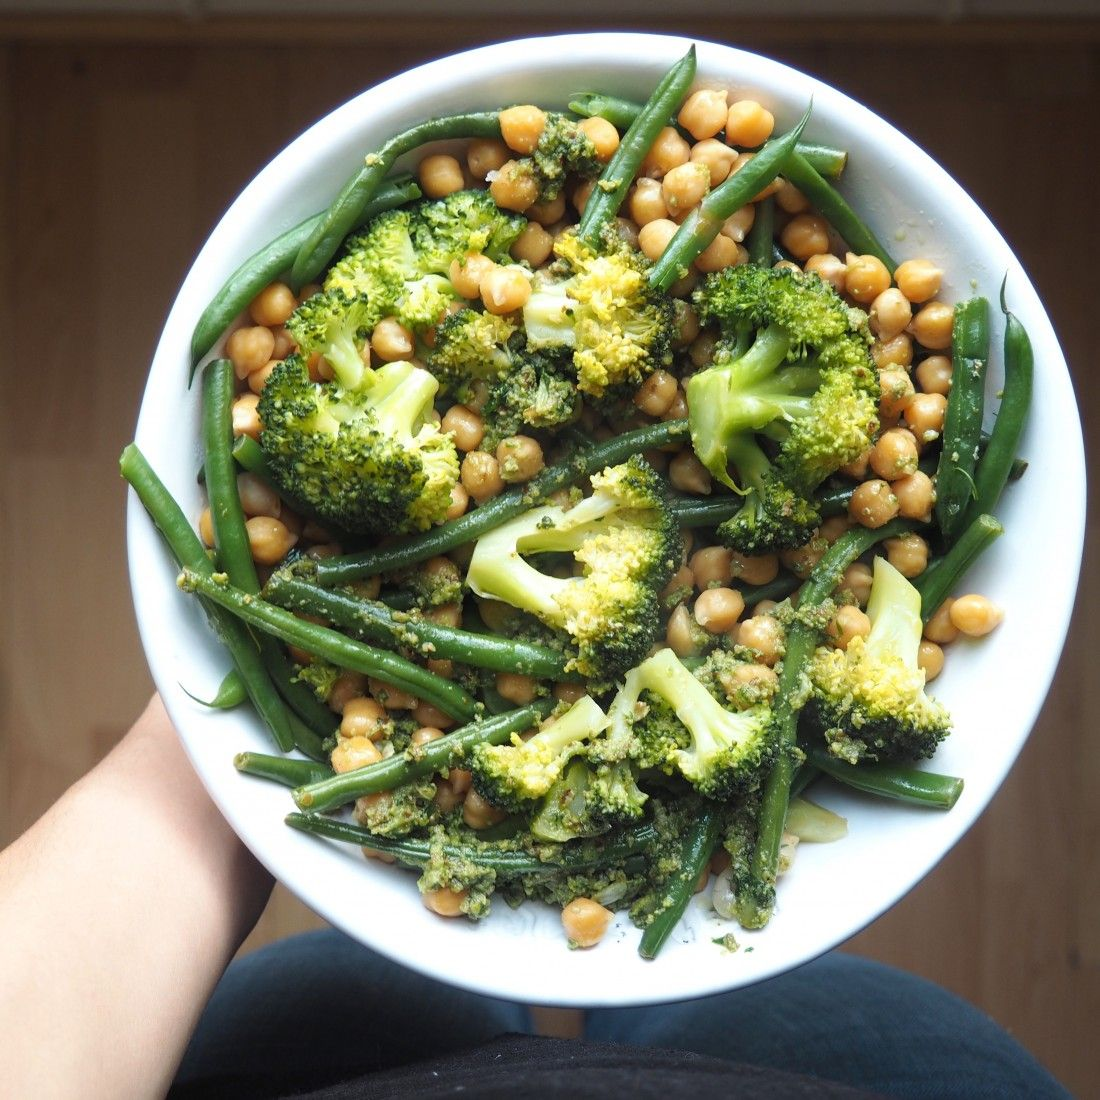 Chickpeas Green Beans Broccoli And Pesto Bowl